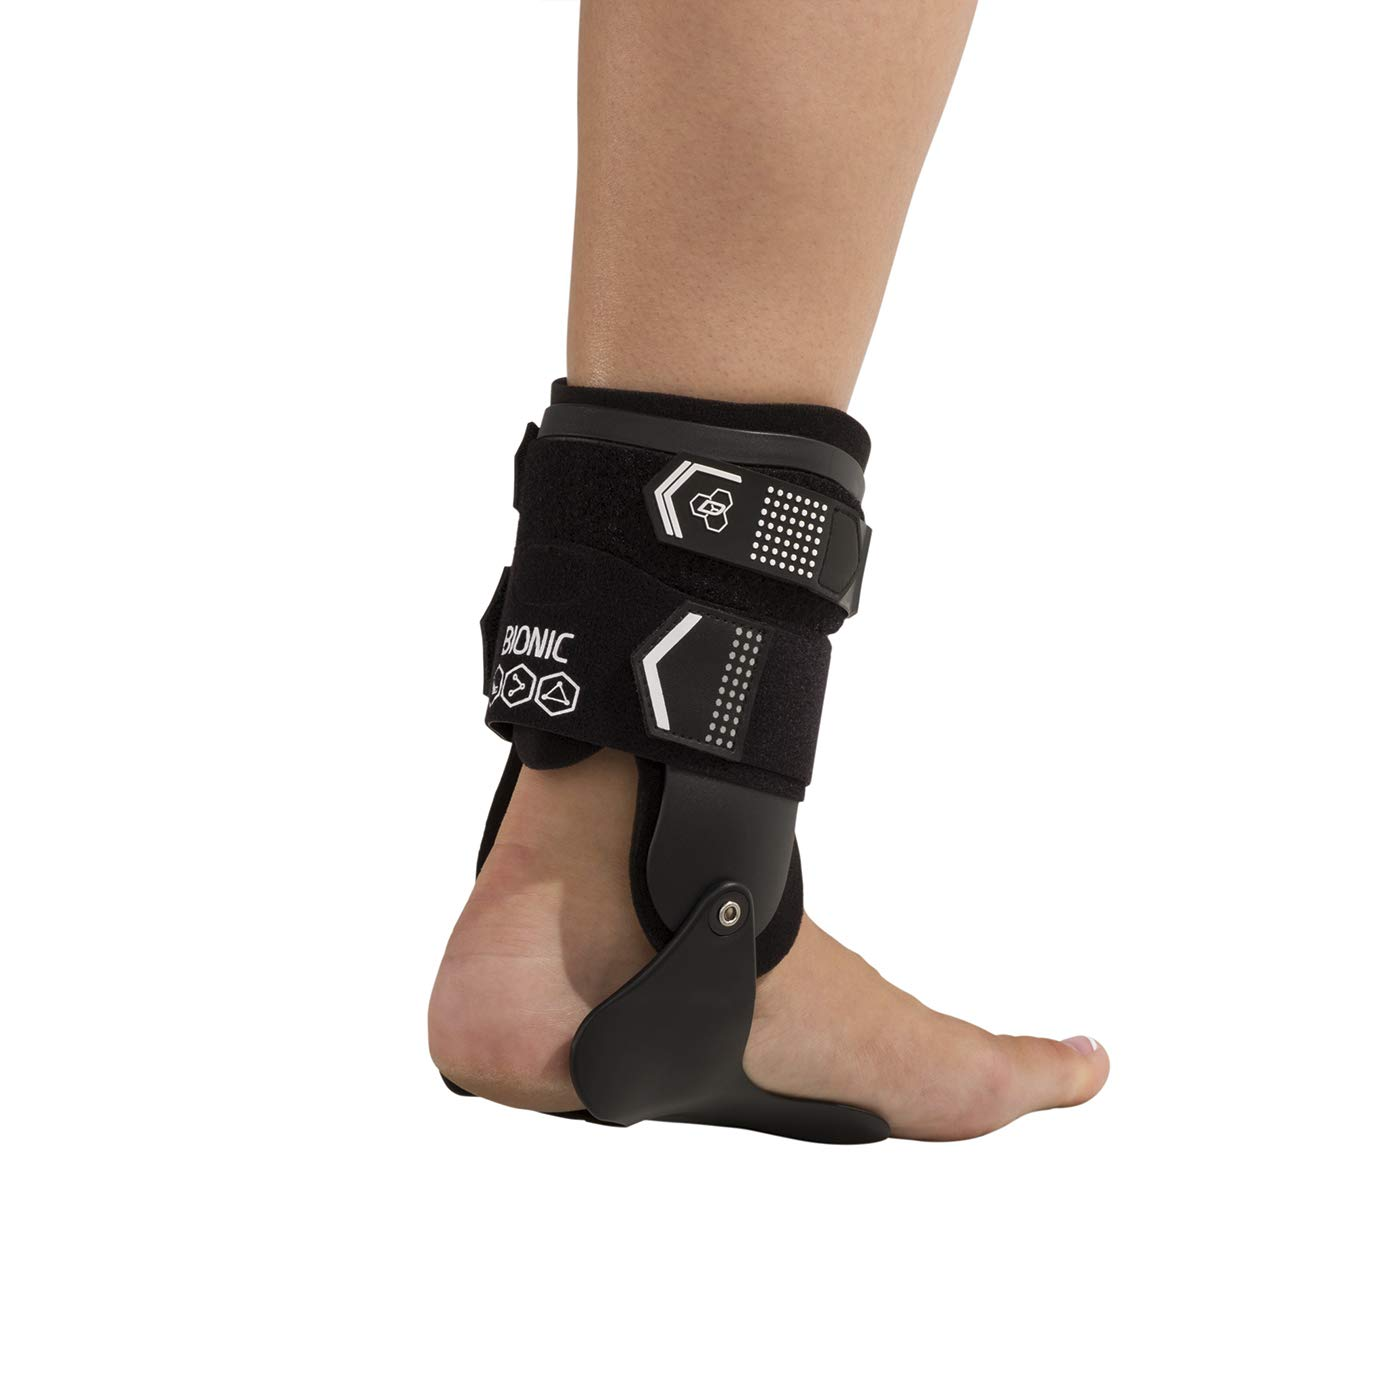 DonJoy Performance Bionic Stirrup Ankle Braces (Right and Left Pair), Maximum Medial Lateral Ankle Support, Low-Profile Rigid Brace, Adjustable - Black, Medium - Value Bundle by DonJoy Performance (Image #9)